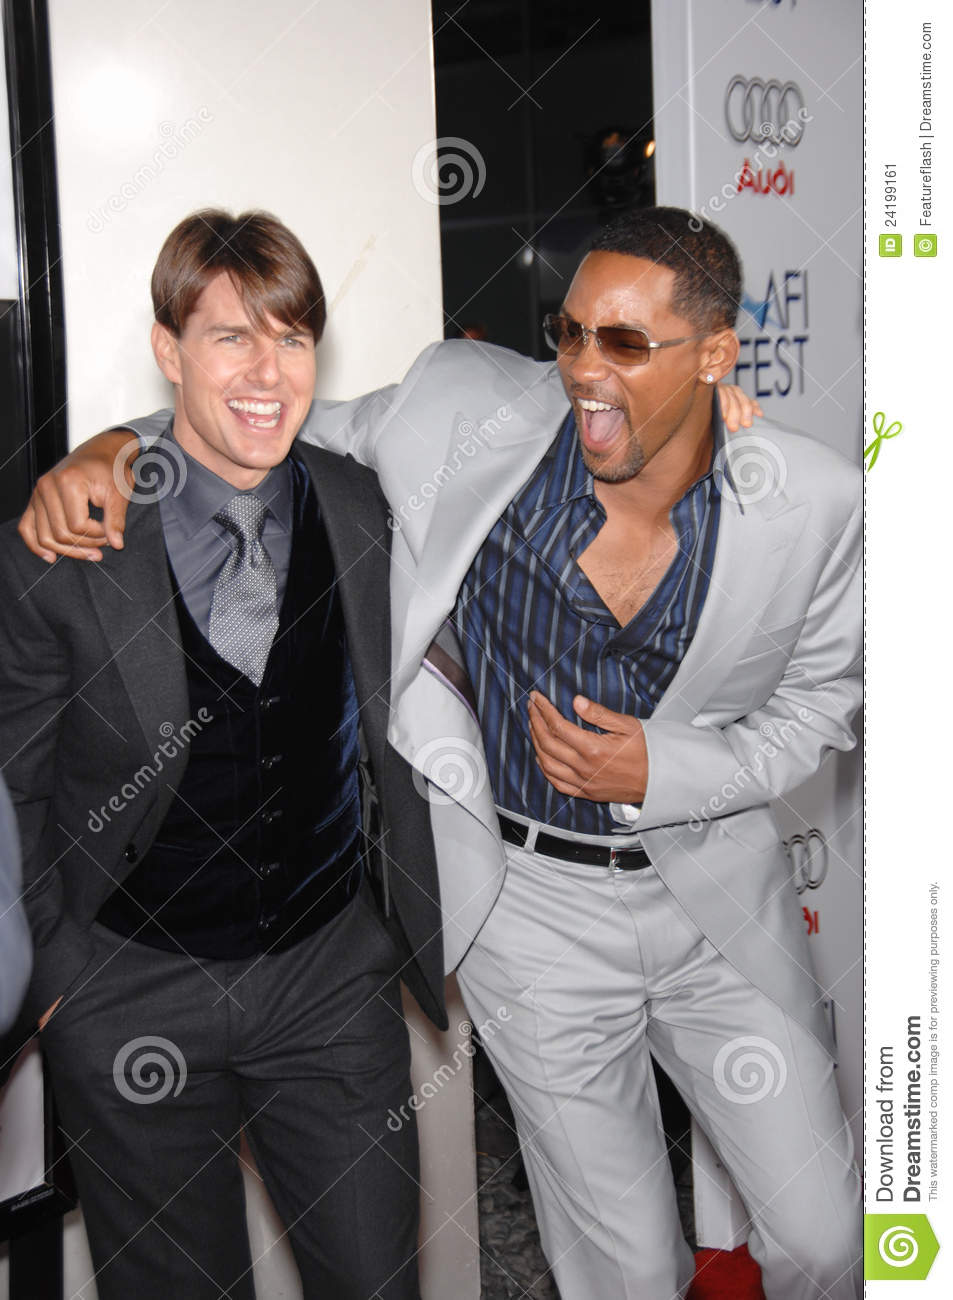 from Jesus will smith and tom cruise gay